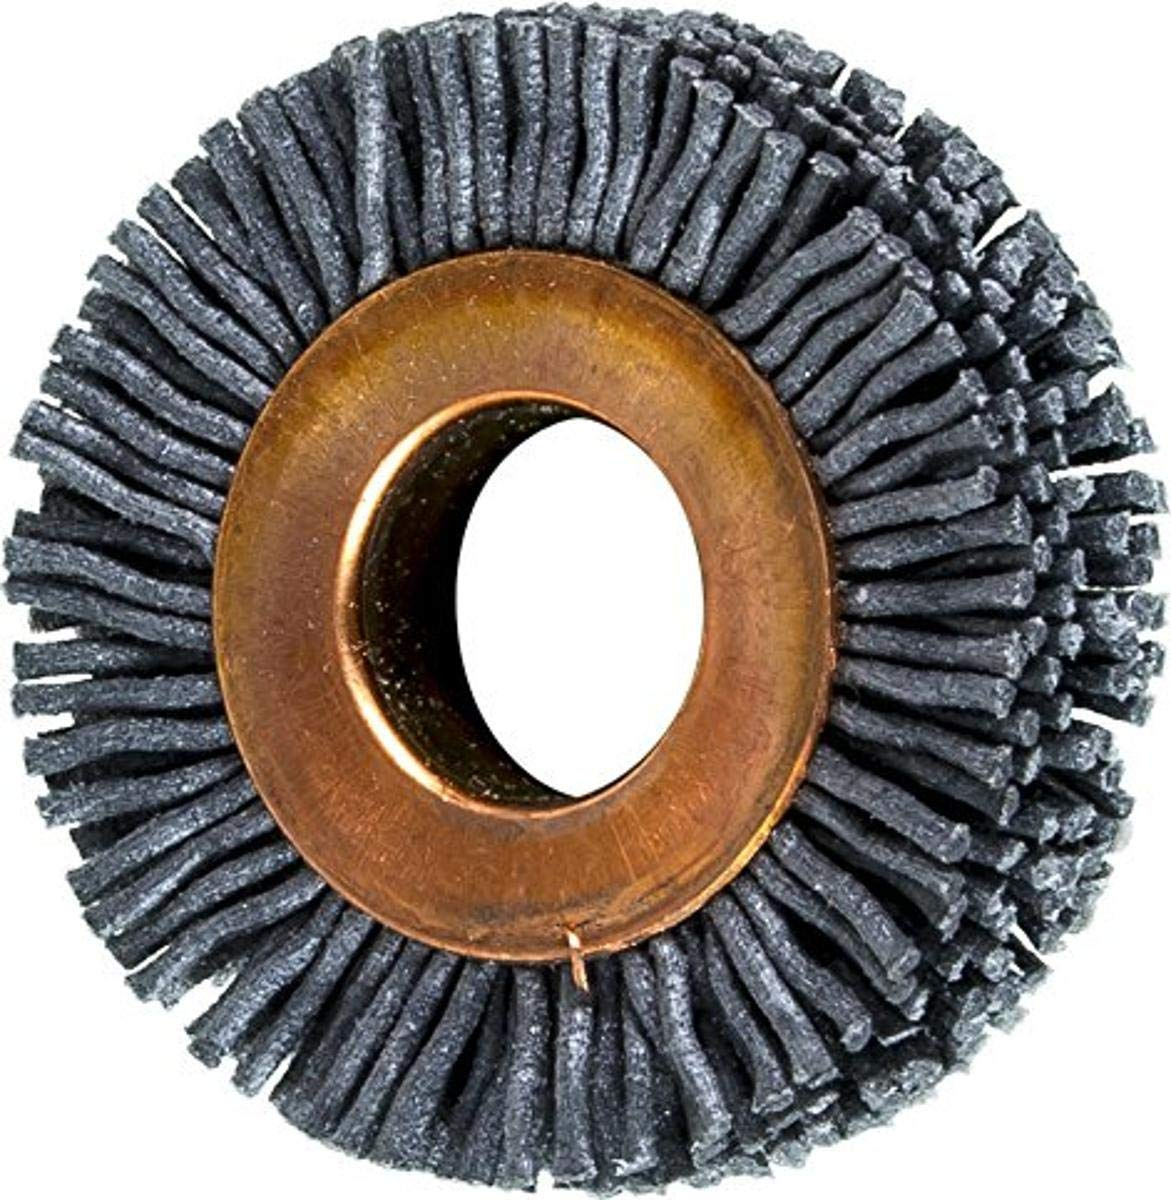 PFERD 83782 Small Diameter Copper Centre Abrasive Filament Wheel Brush, Silicon Carbide Grain (SiC), 1-1/2